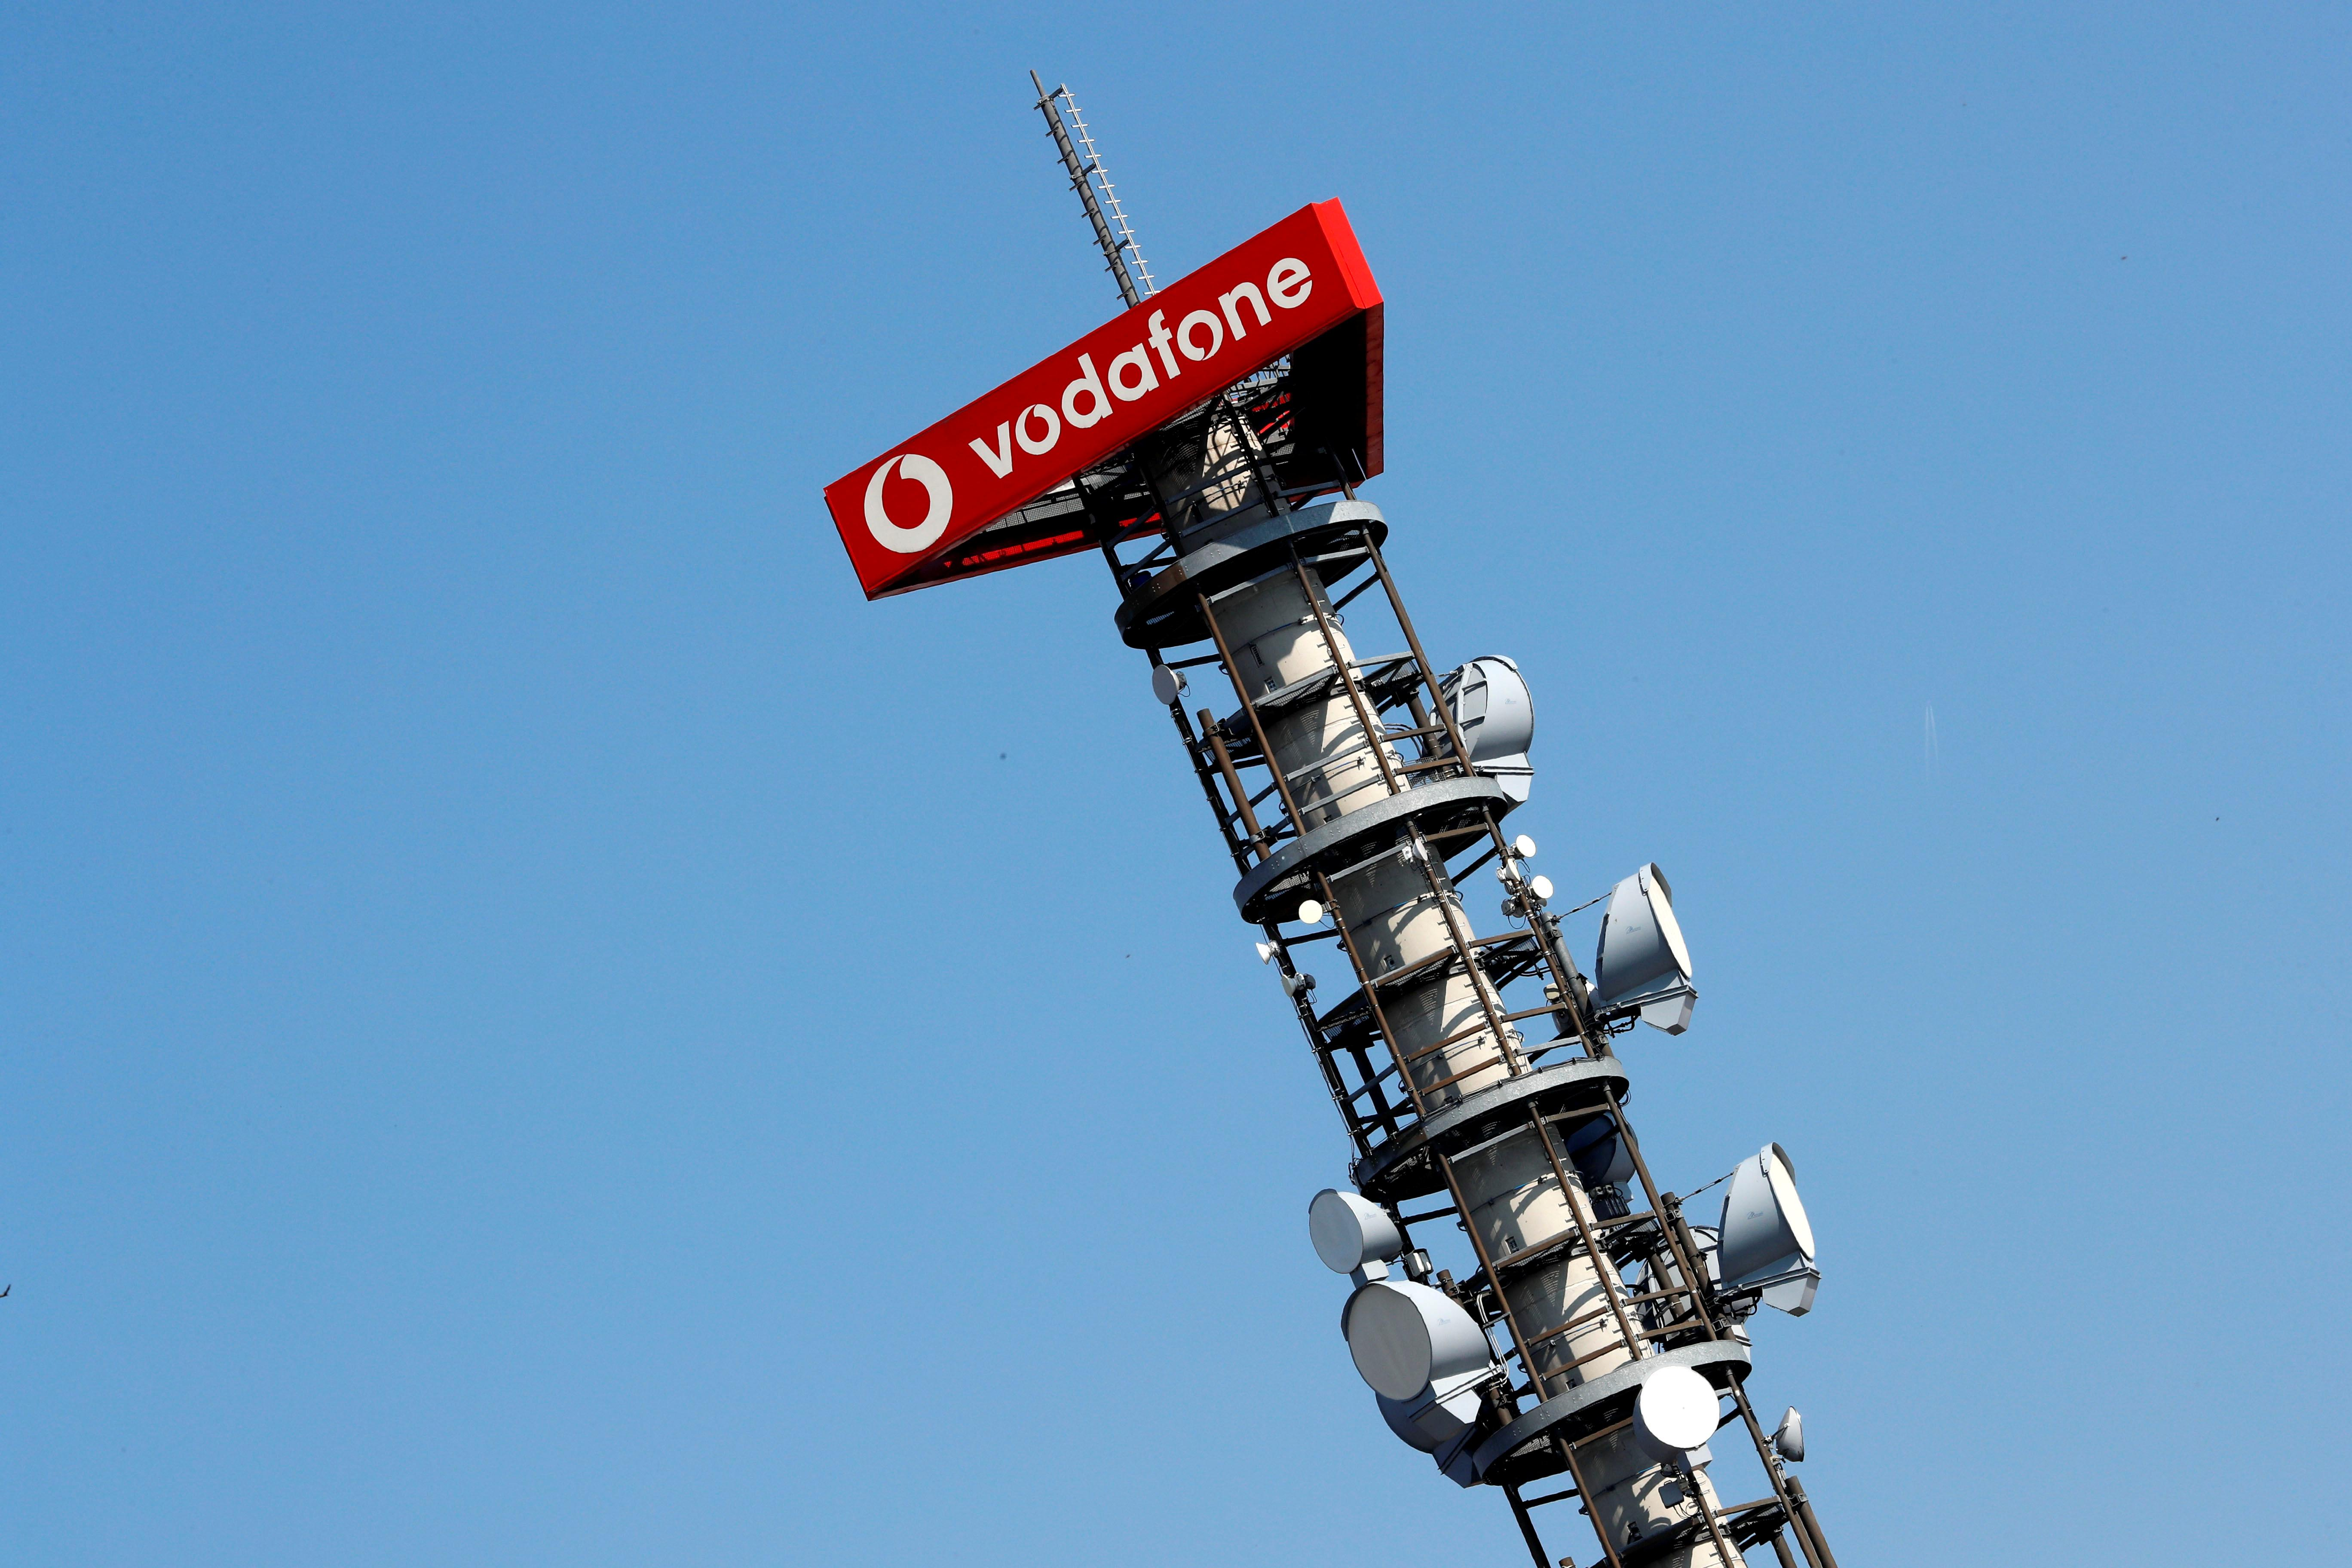 Britain's mobile operators team up to tackle rural 'not-spots'